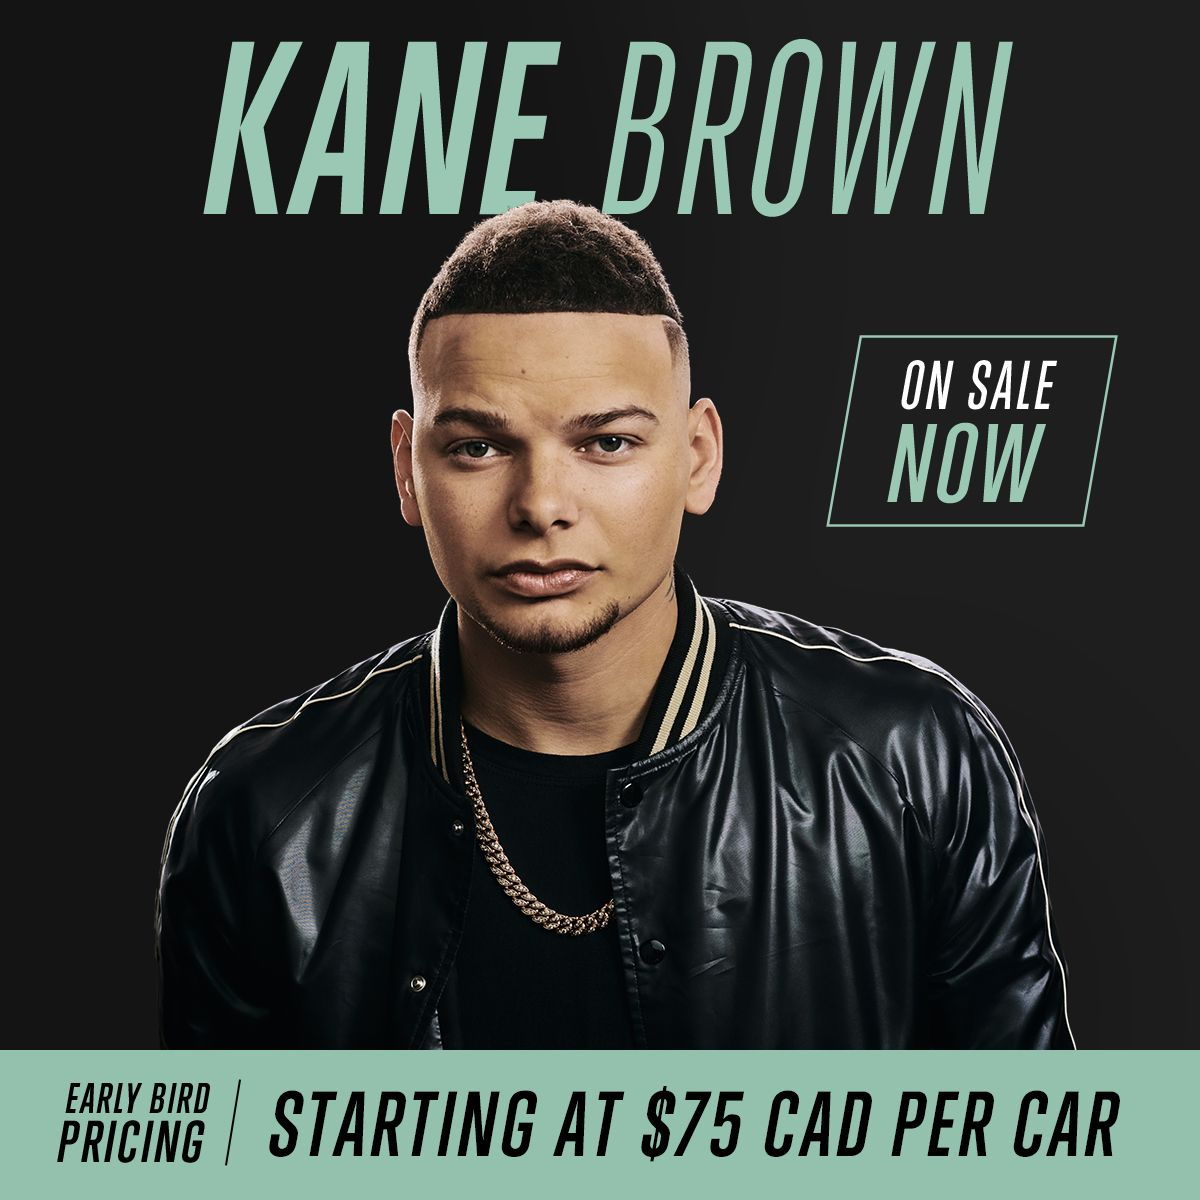 Kane Brown On Sale CAD.jpg